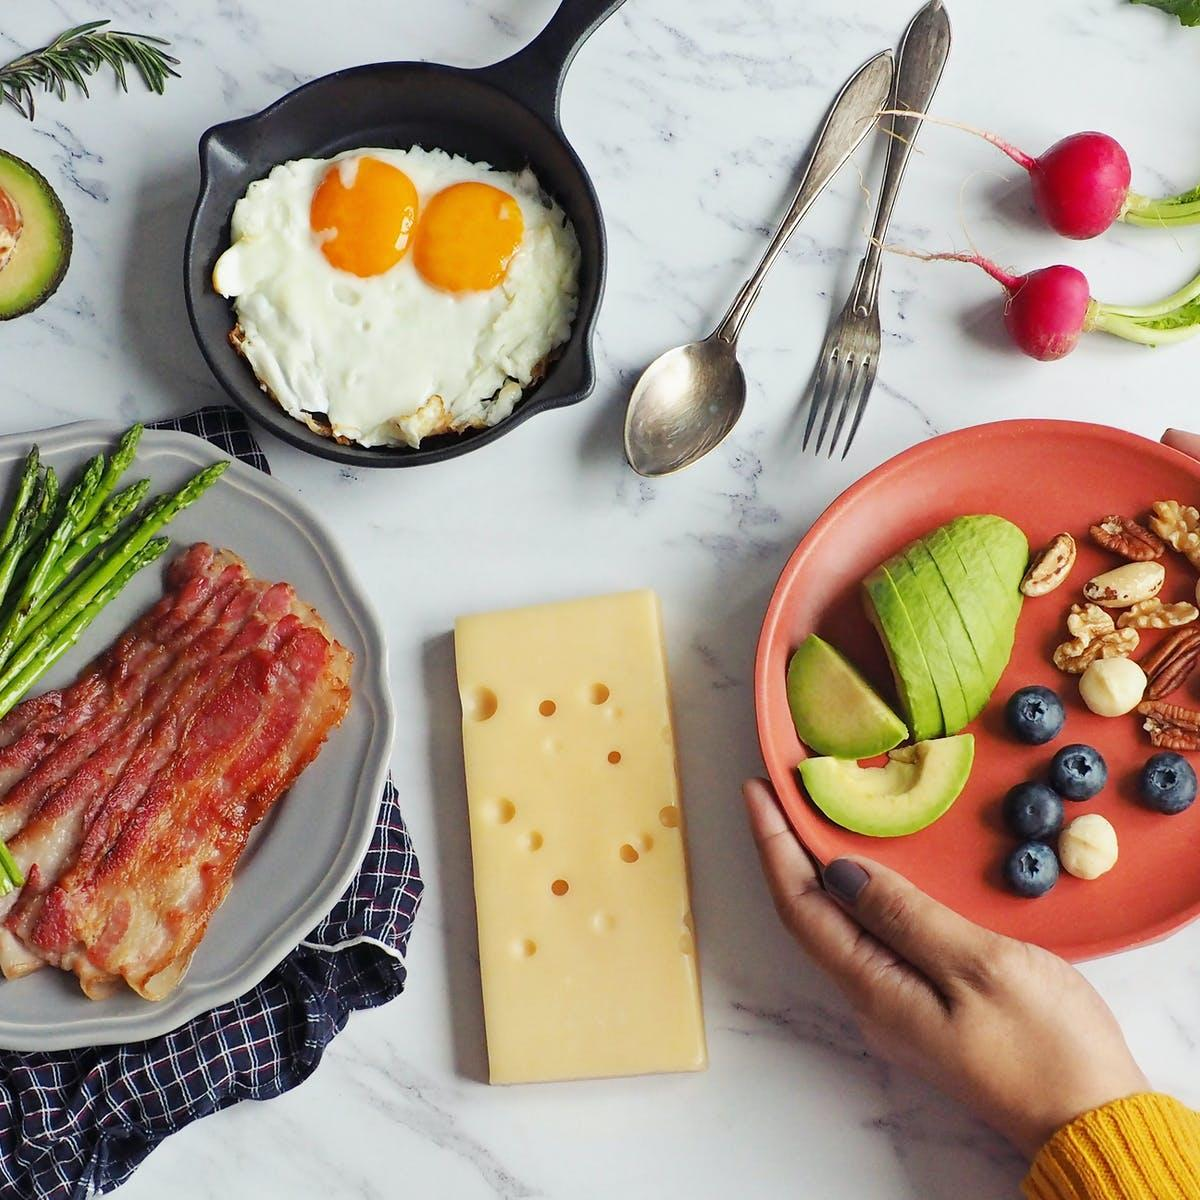 Keto diet: here's why some people experience fatigue, nausea, headaches  after starting it